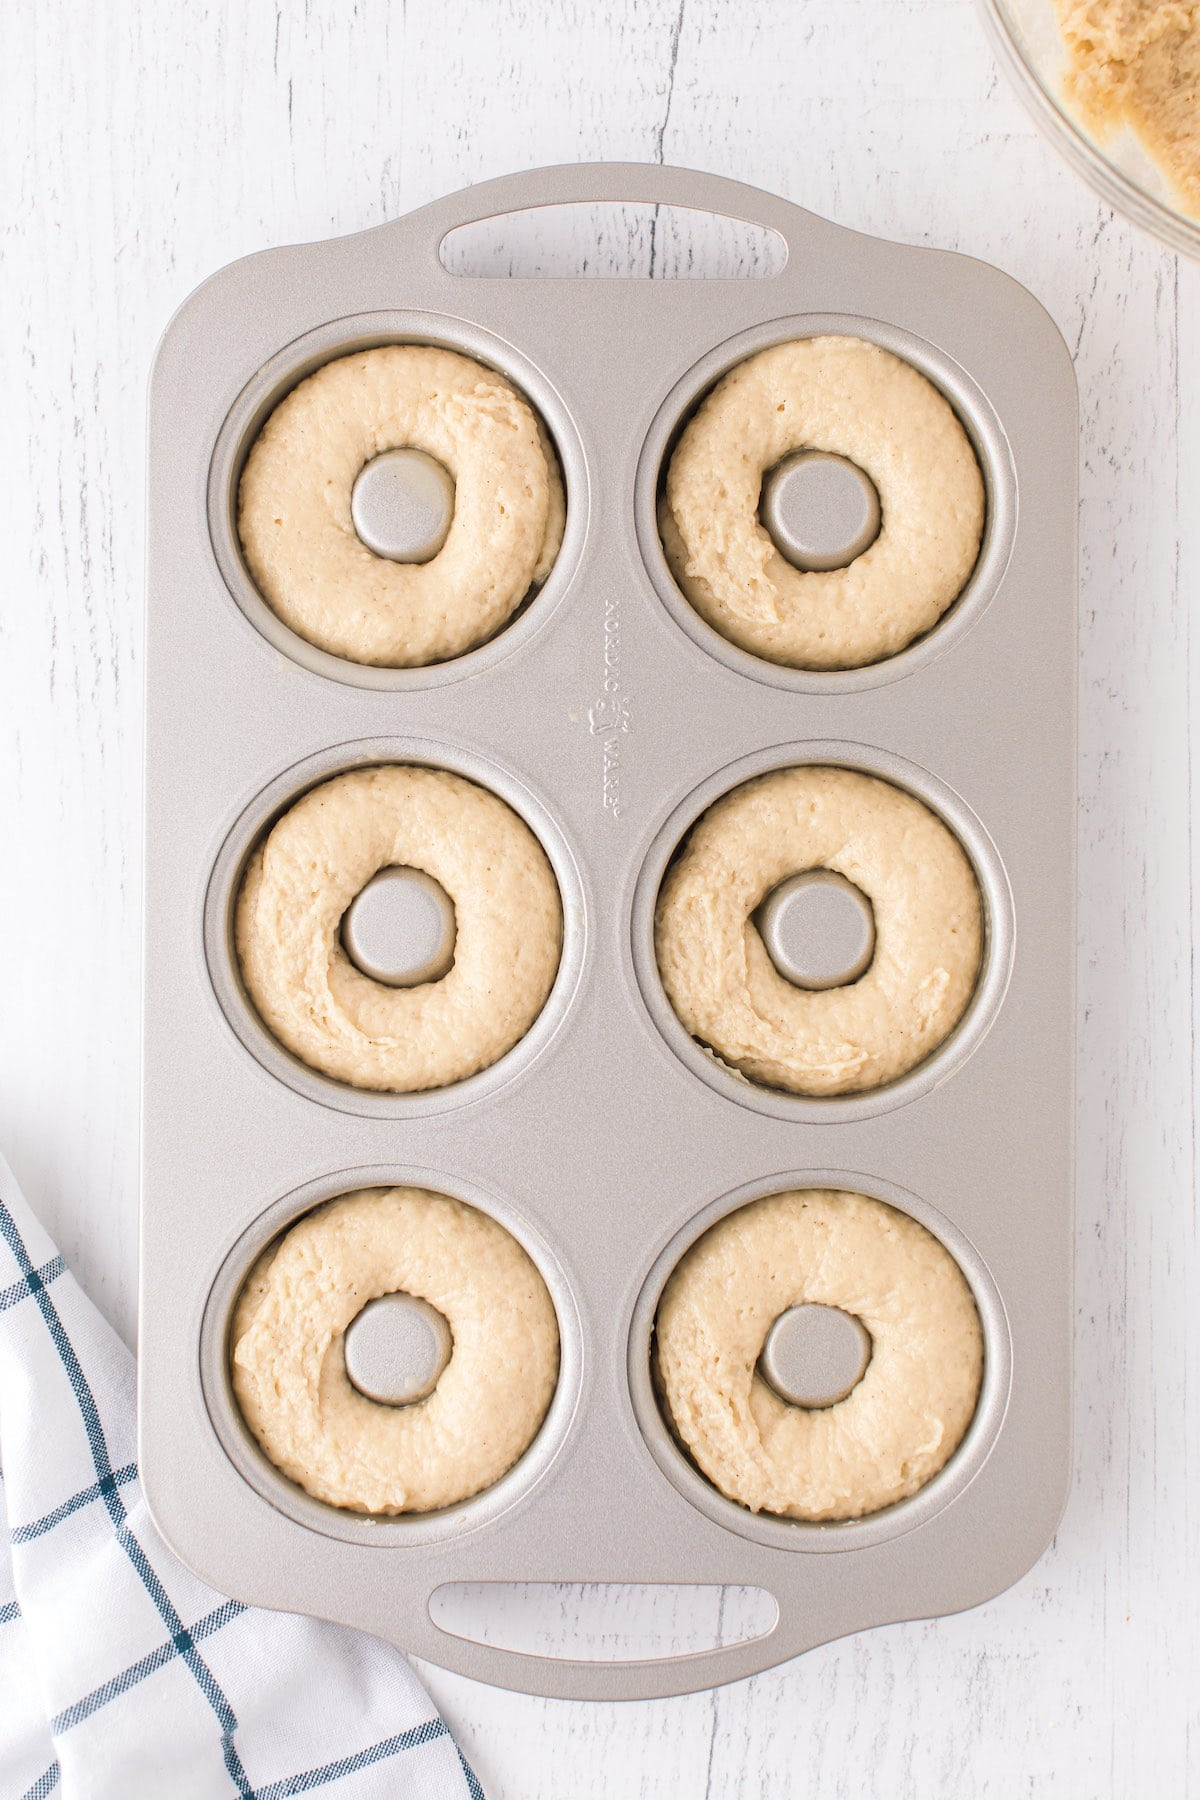 fill donut pans with the batter